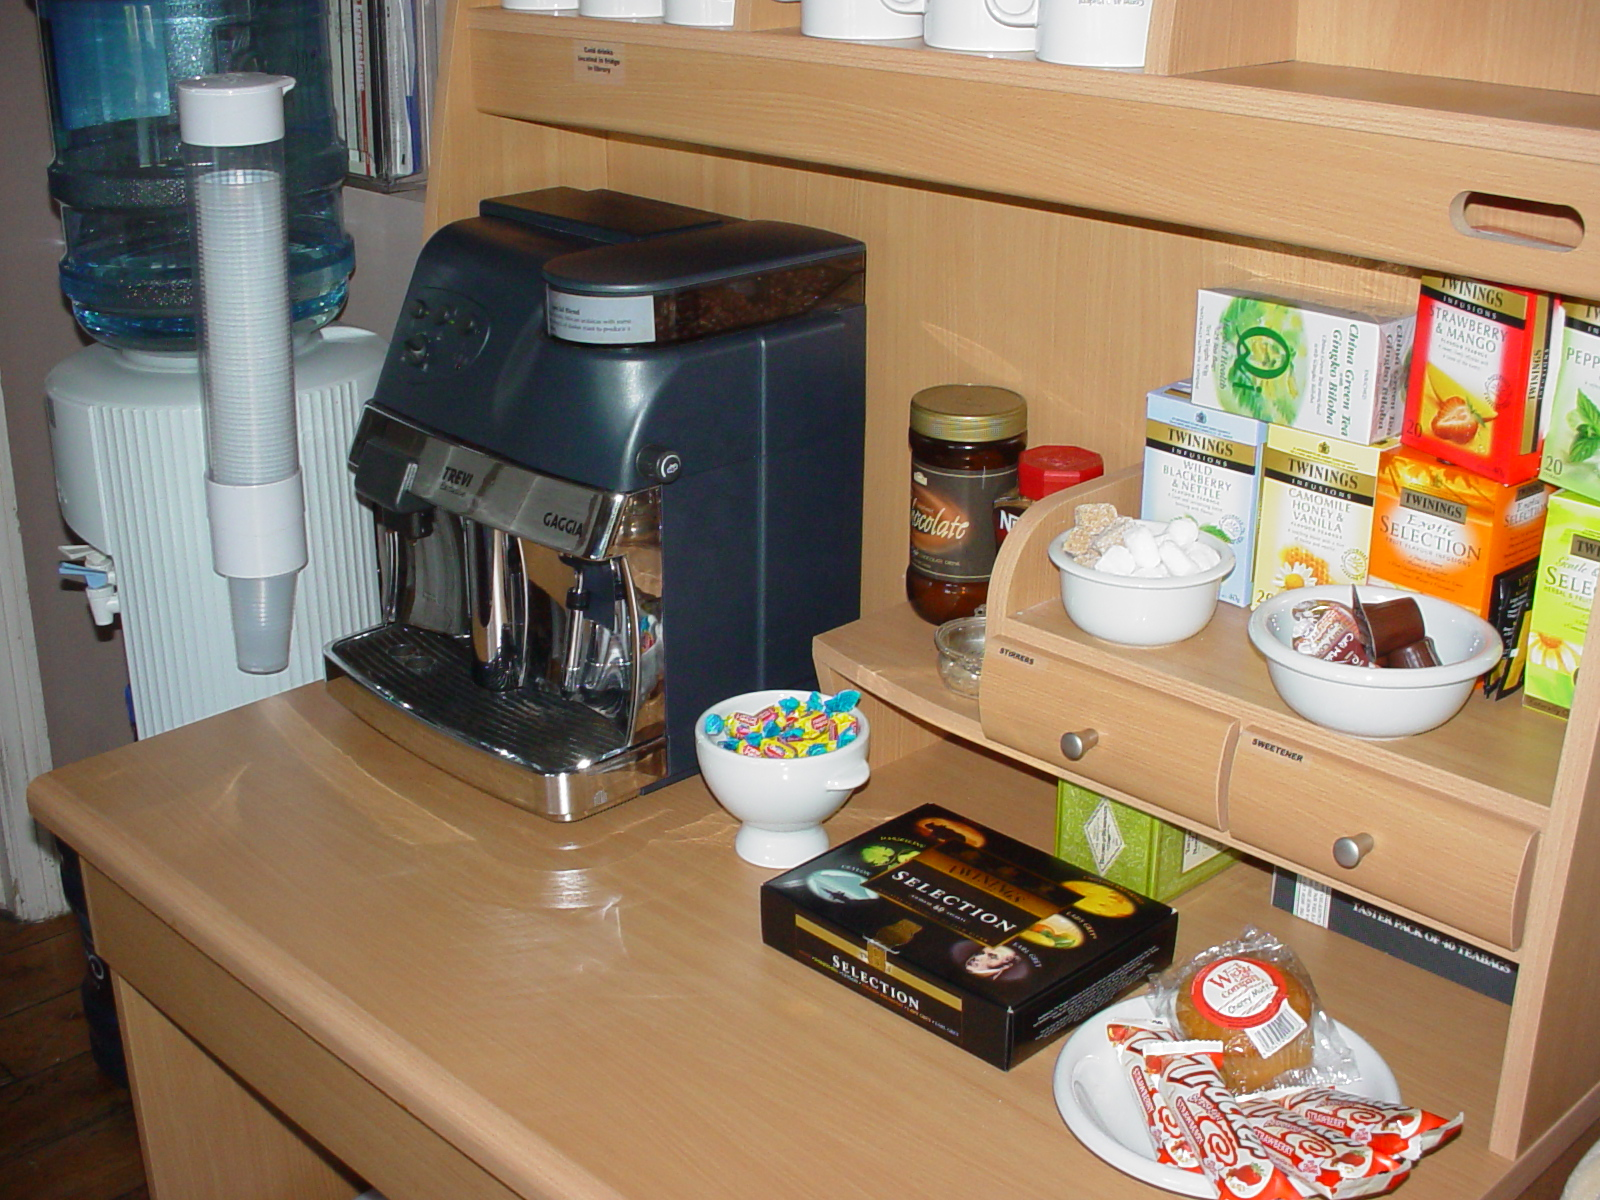 the tea and coffee station